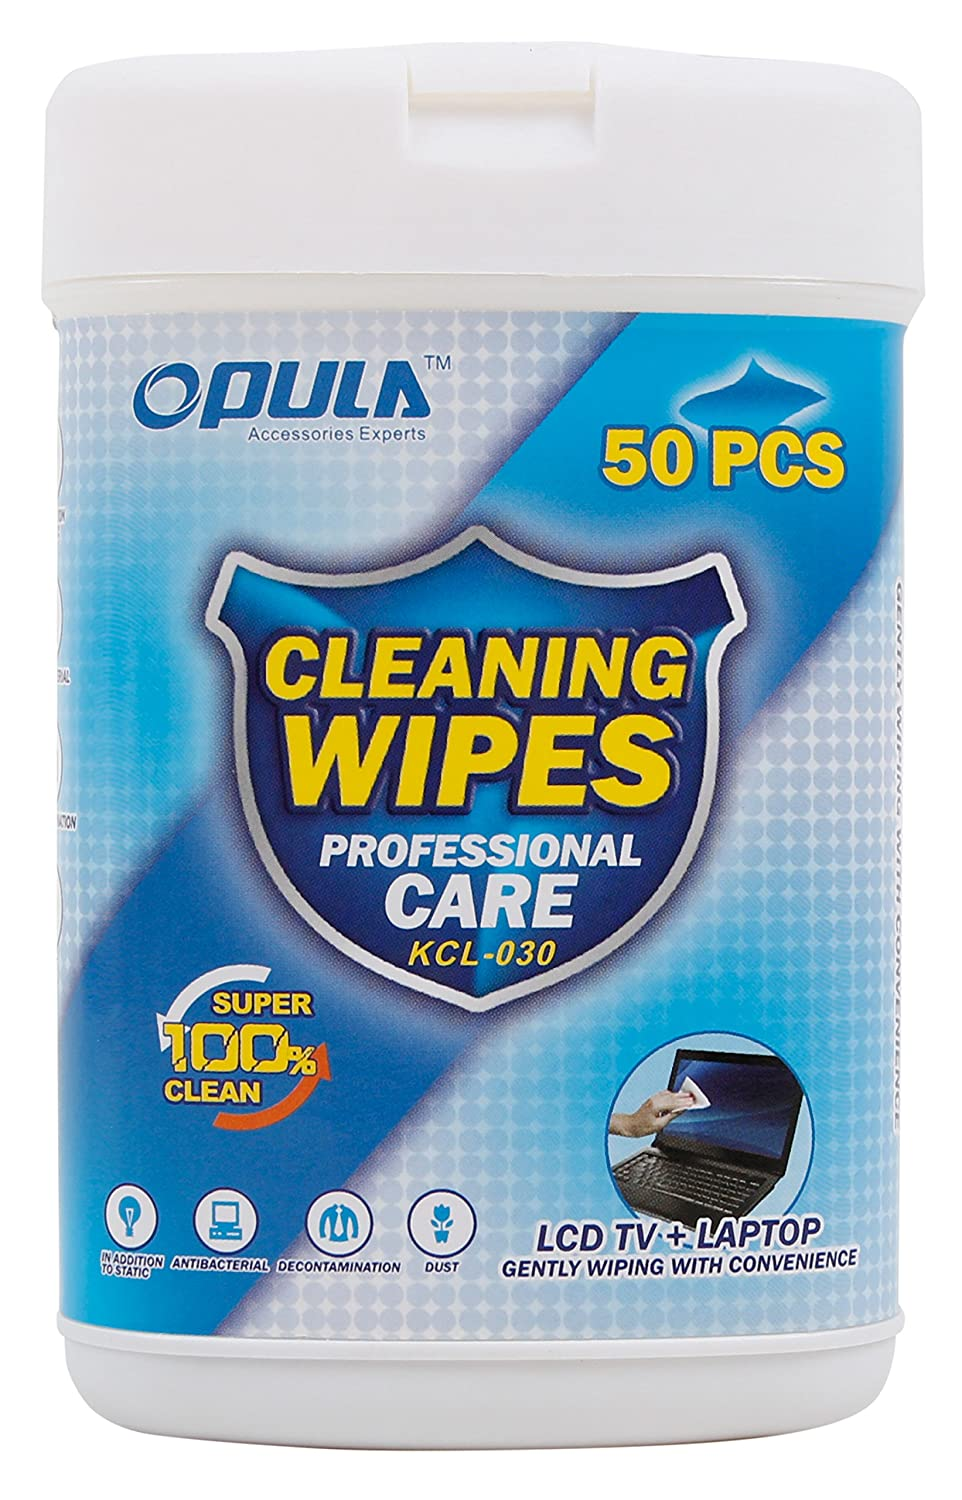 DURAGADGET 50 Anti-Static LCD Cleaning Cloths Suitable for use with The Nextbase 112 Lite Dash Cam | iNCarCam 412GW | iNCarCam Duo